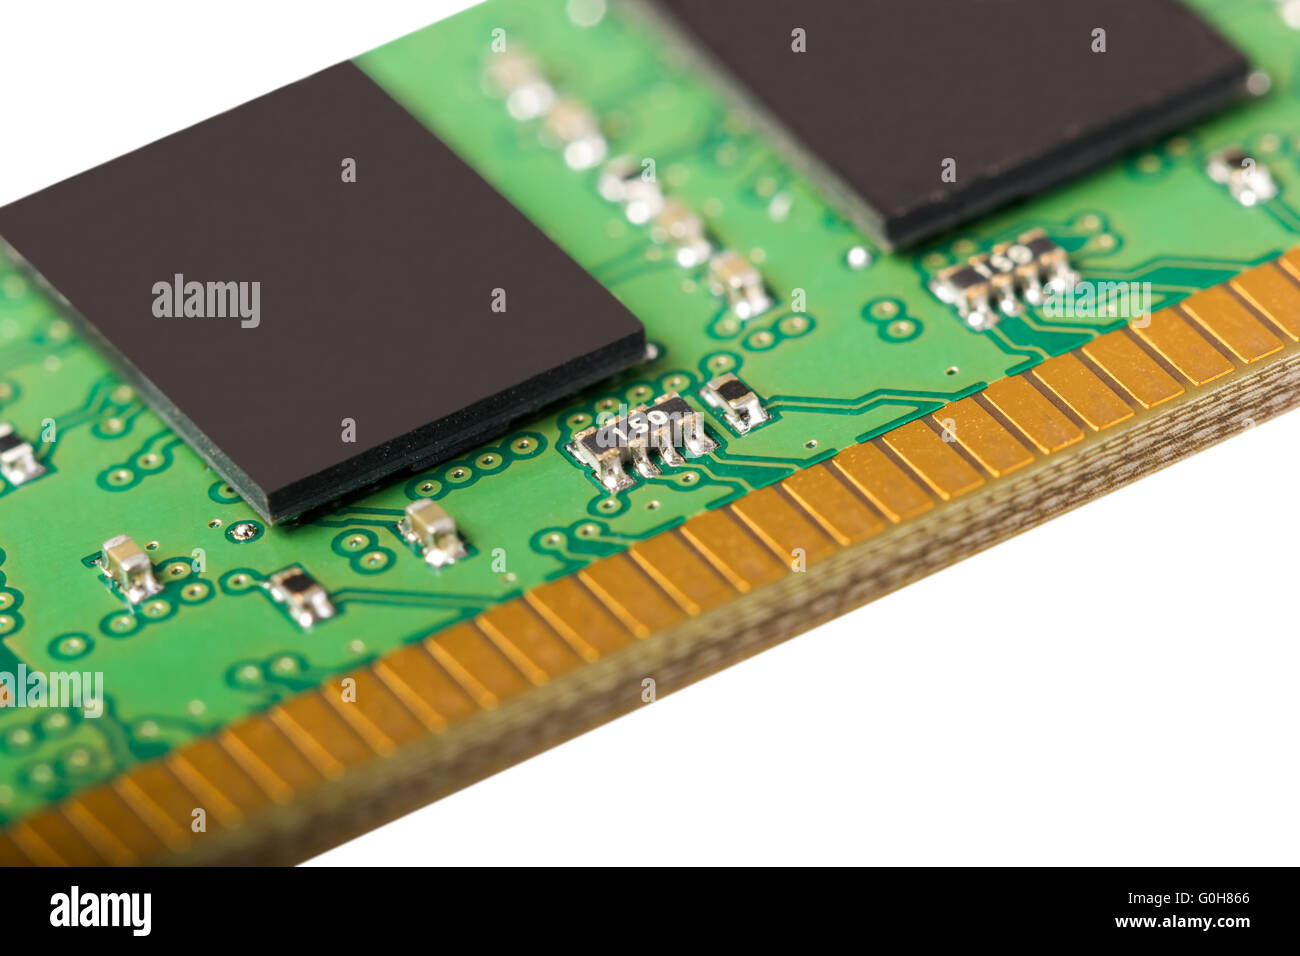 Computer random access memory (RAM) modules isolated on the white background - Stock Image